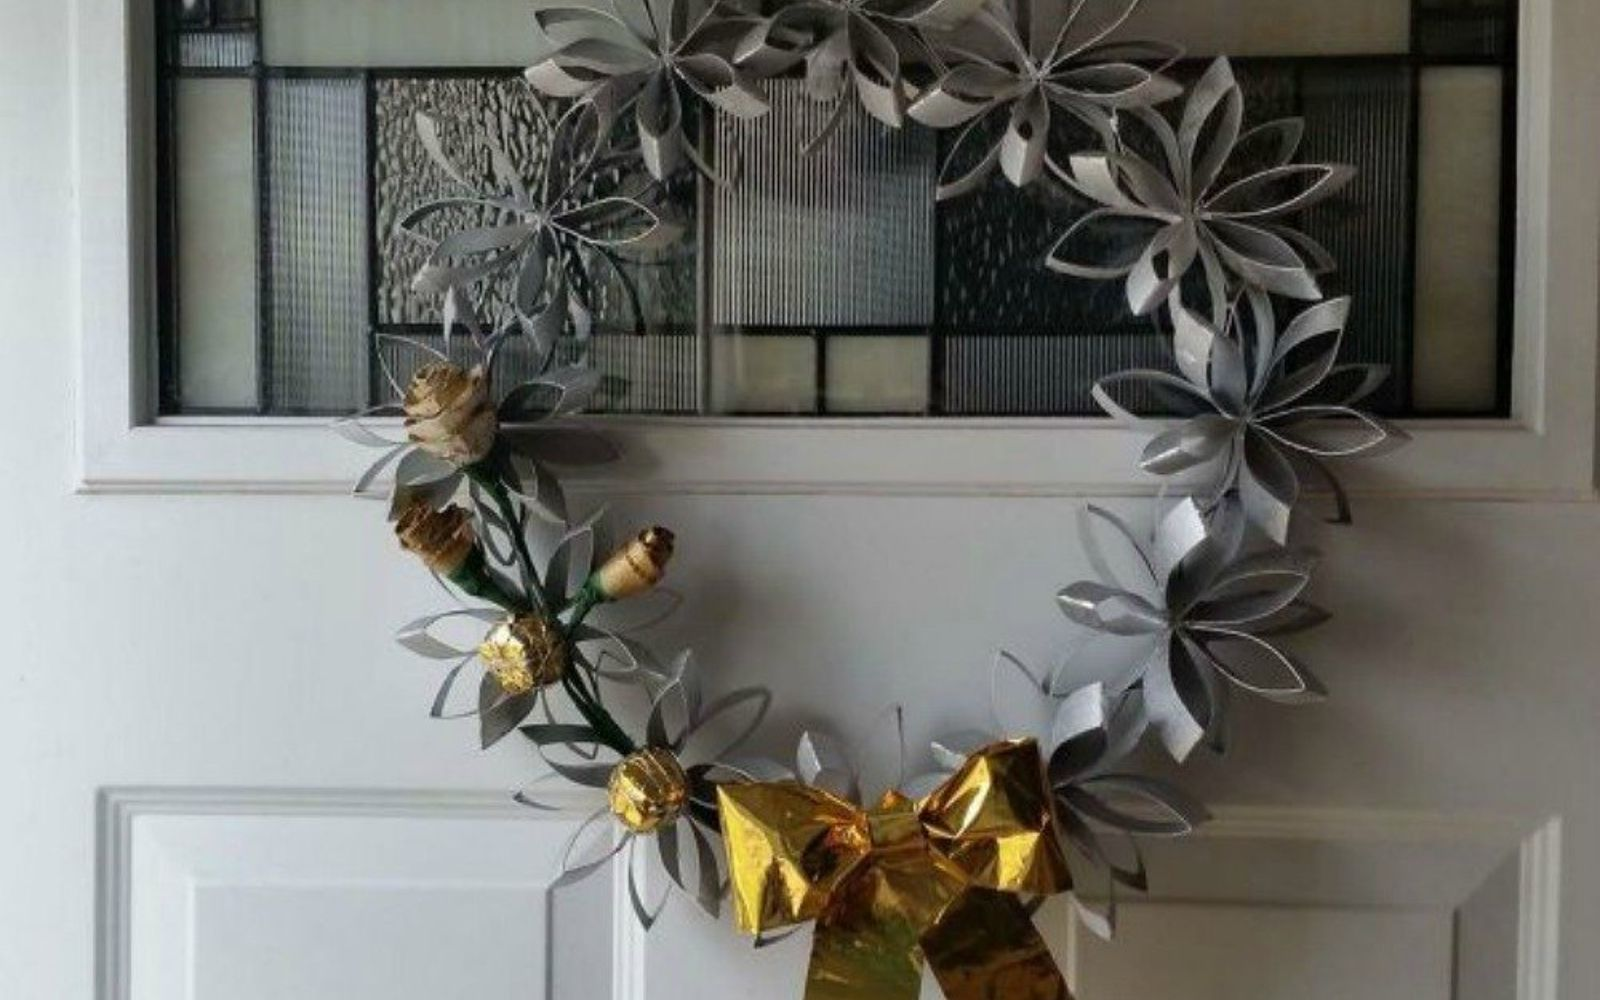 s 17 tricks to make a gorgeous wreath in half the time, crafts, wreaths, Reuse toilet paper rolls for a flower wreath